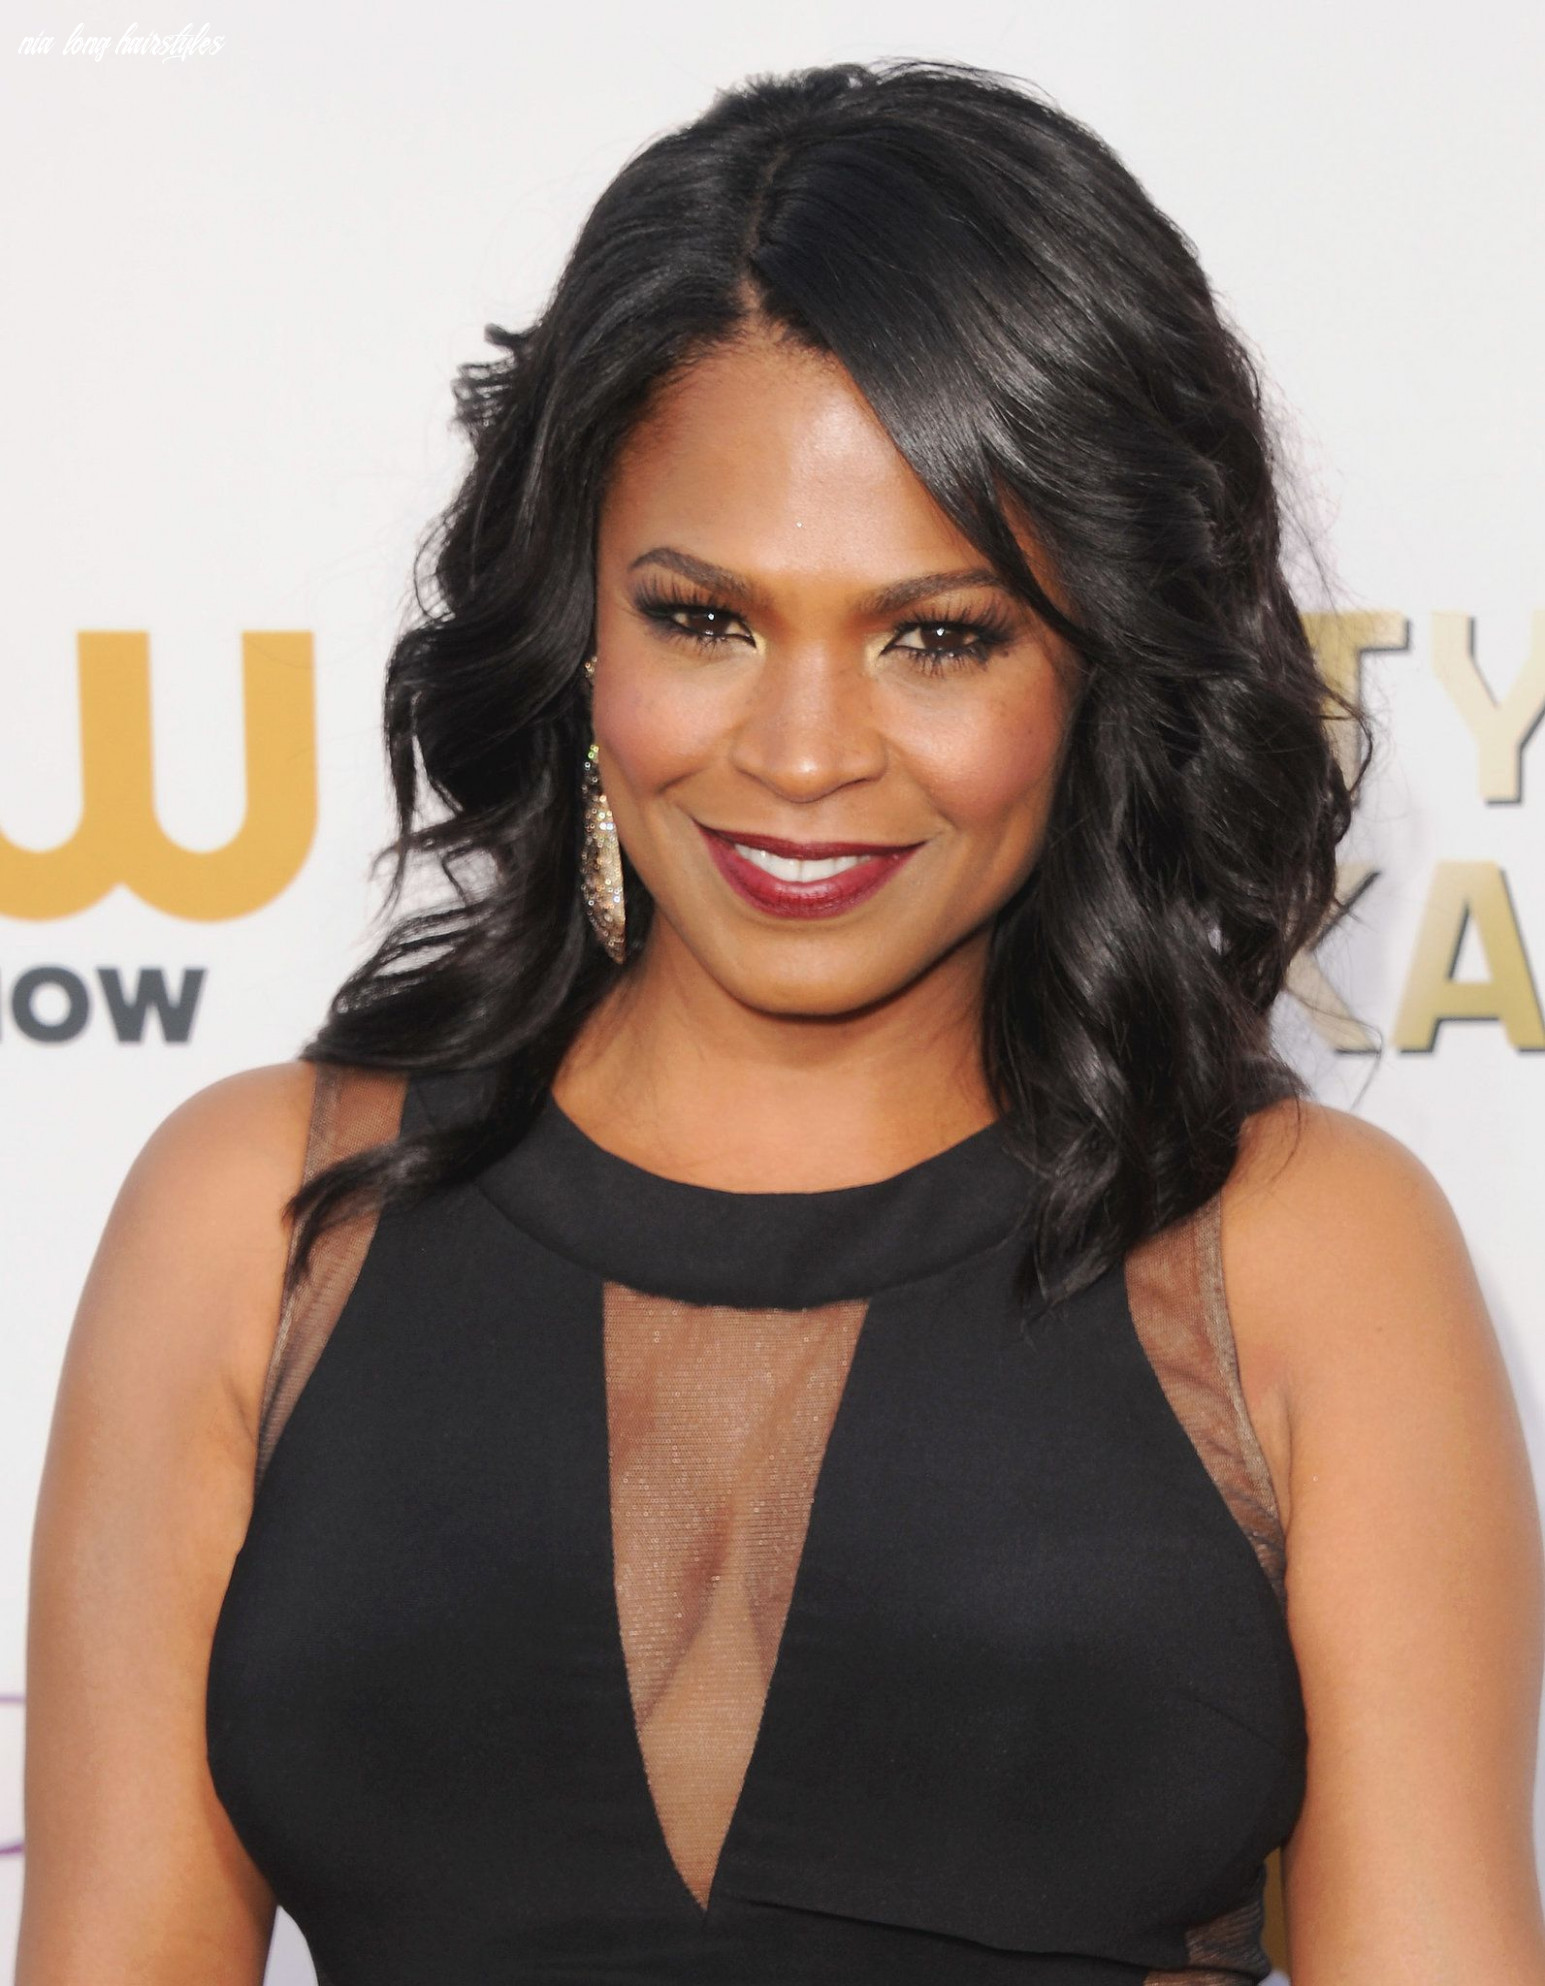 Nia long (with images) | nia long, hair styles, womens hairstyles nia long hairstyles